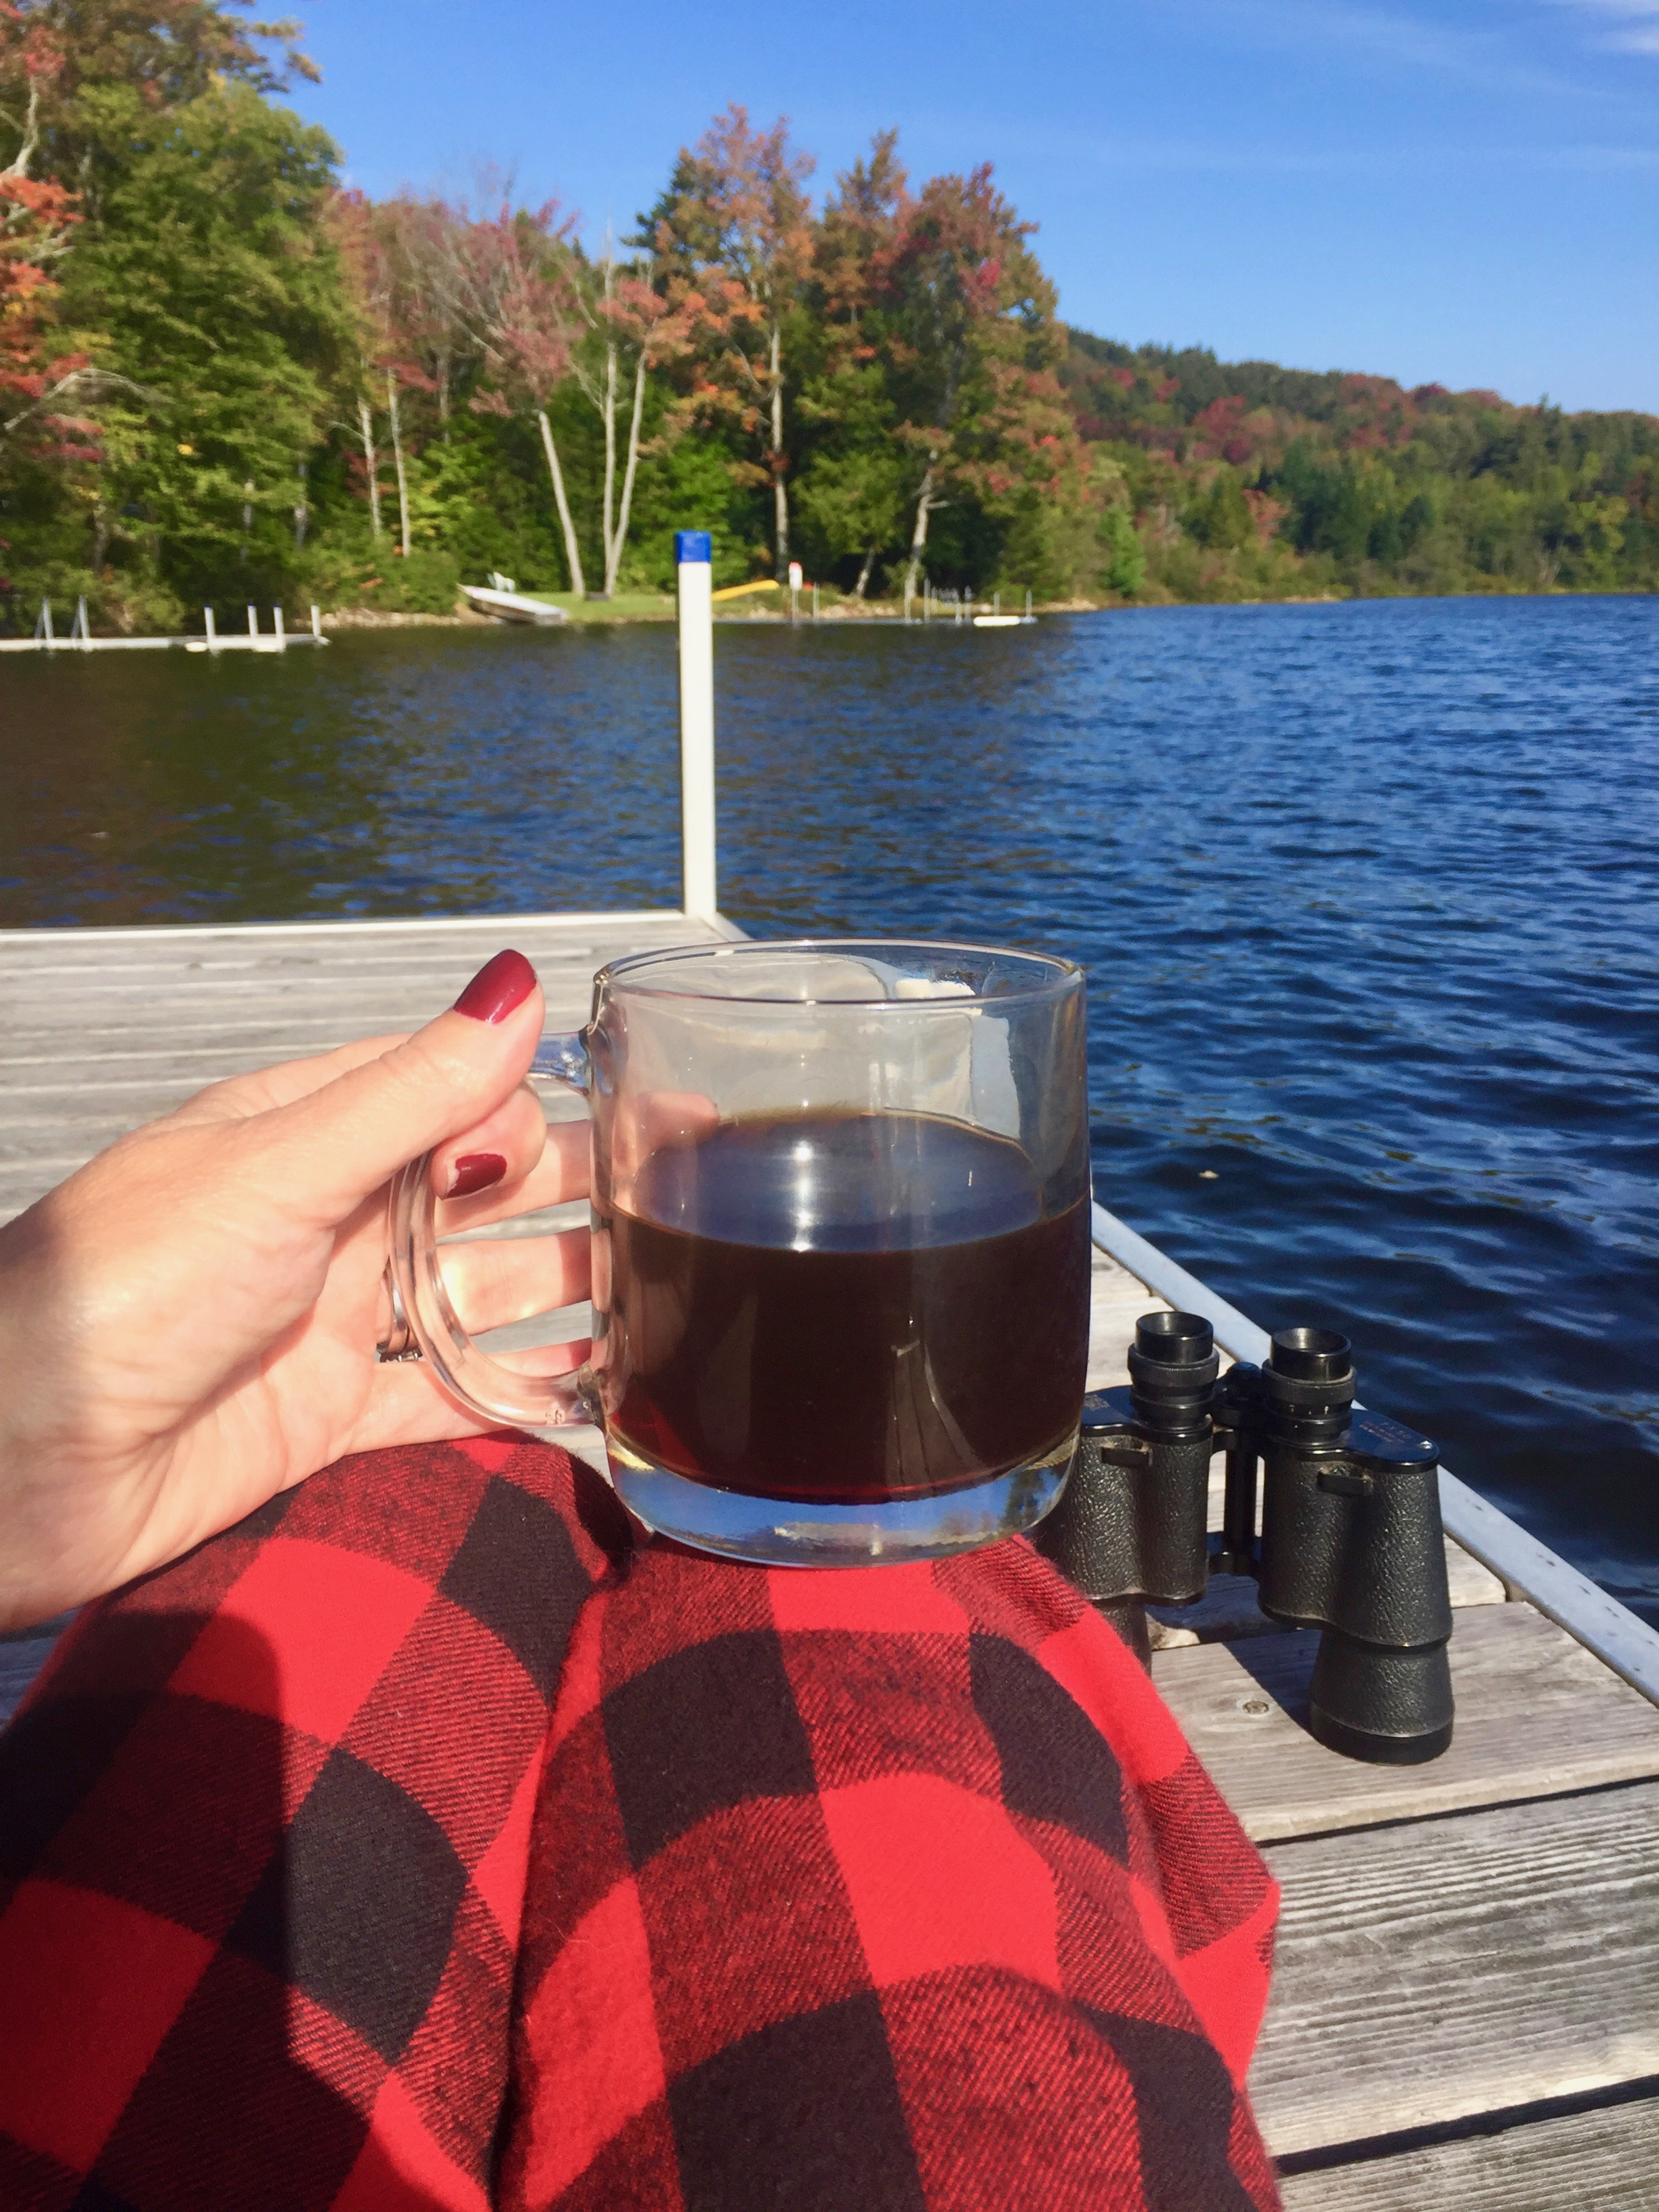 """Whenever we are at our getaway cabin in the mountains of Maine, I look forward to the chilly nights so that I can wear my  Woolrich black and red buffalo check pajama pants  and black flannel top. PS, I am a shorty at 5'2"""" and these are a good length on me, just breaking on the top of my feet."""